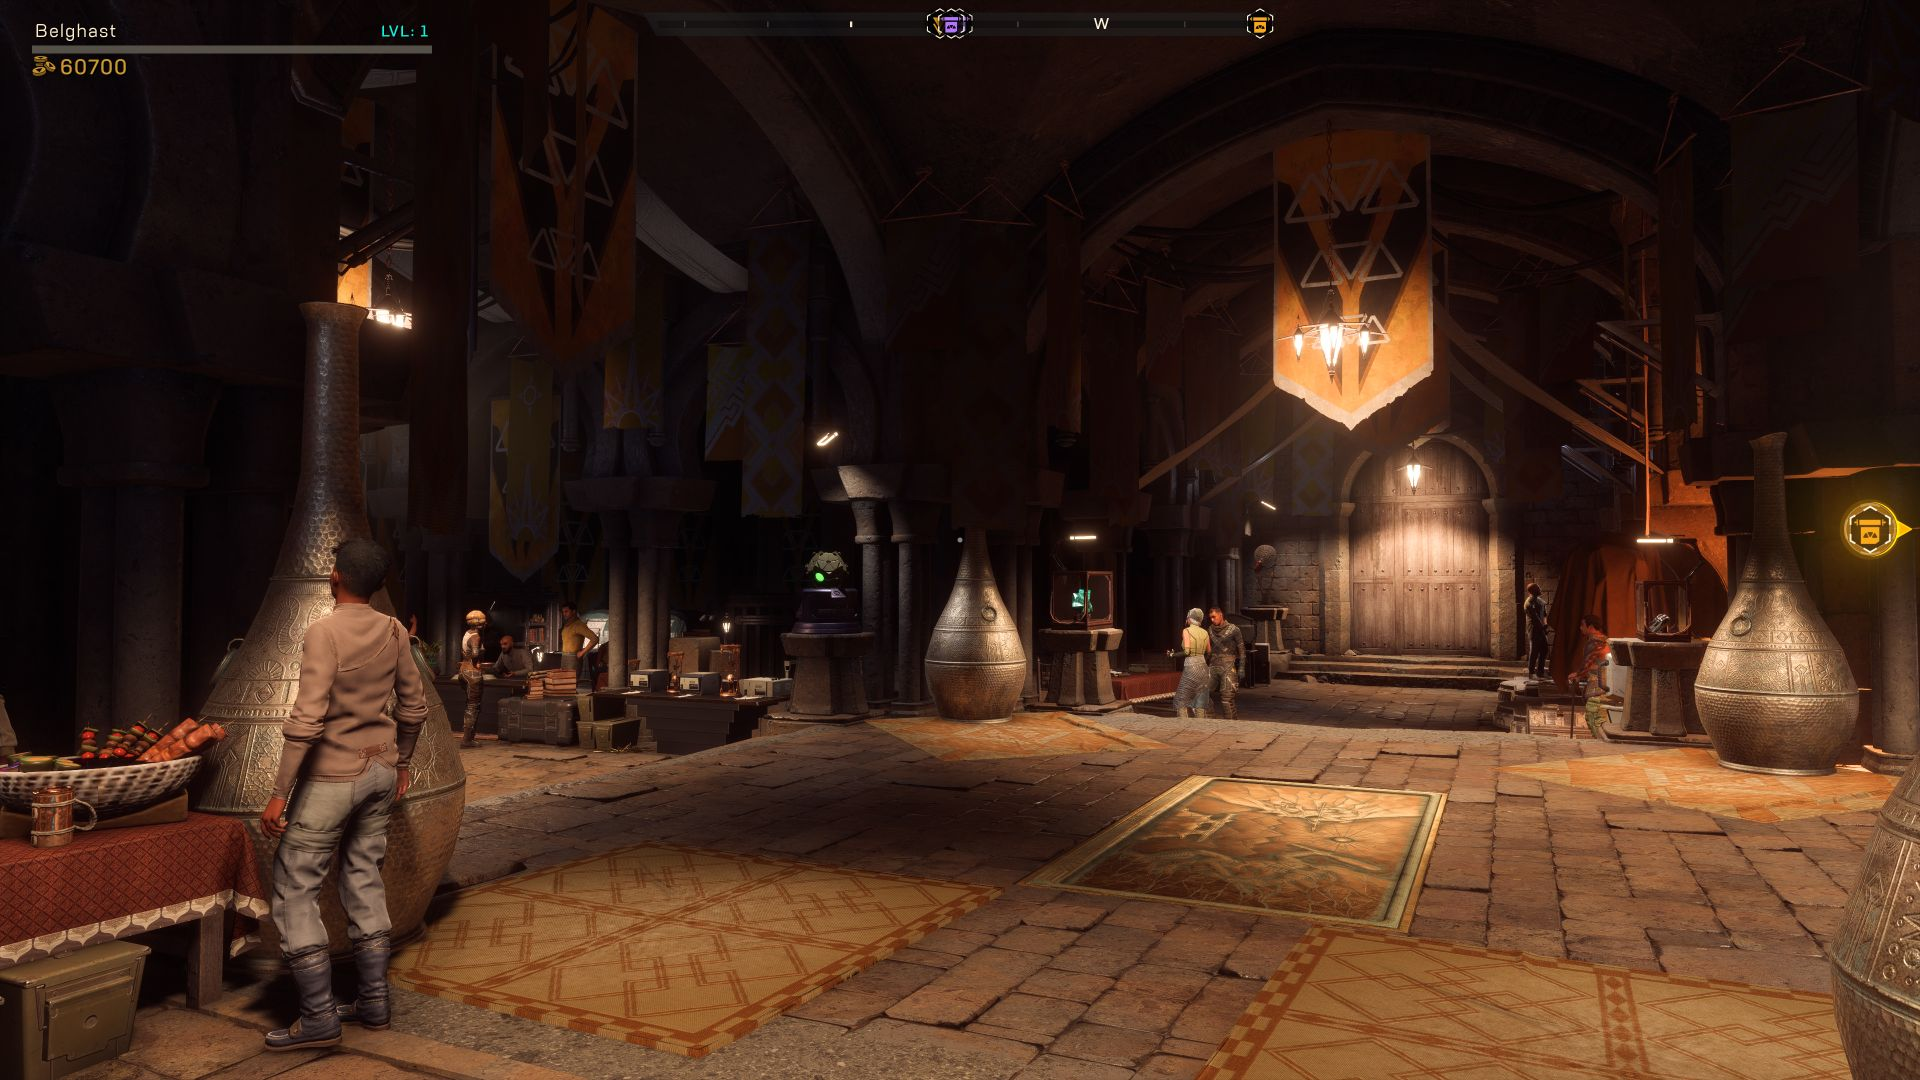 anthem-screenshot-2019-03-04-06-10-17-34